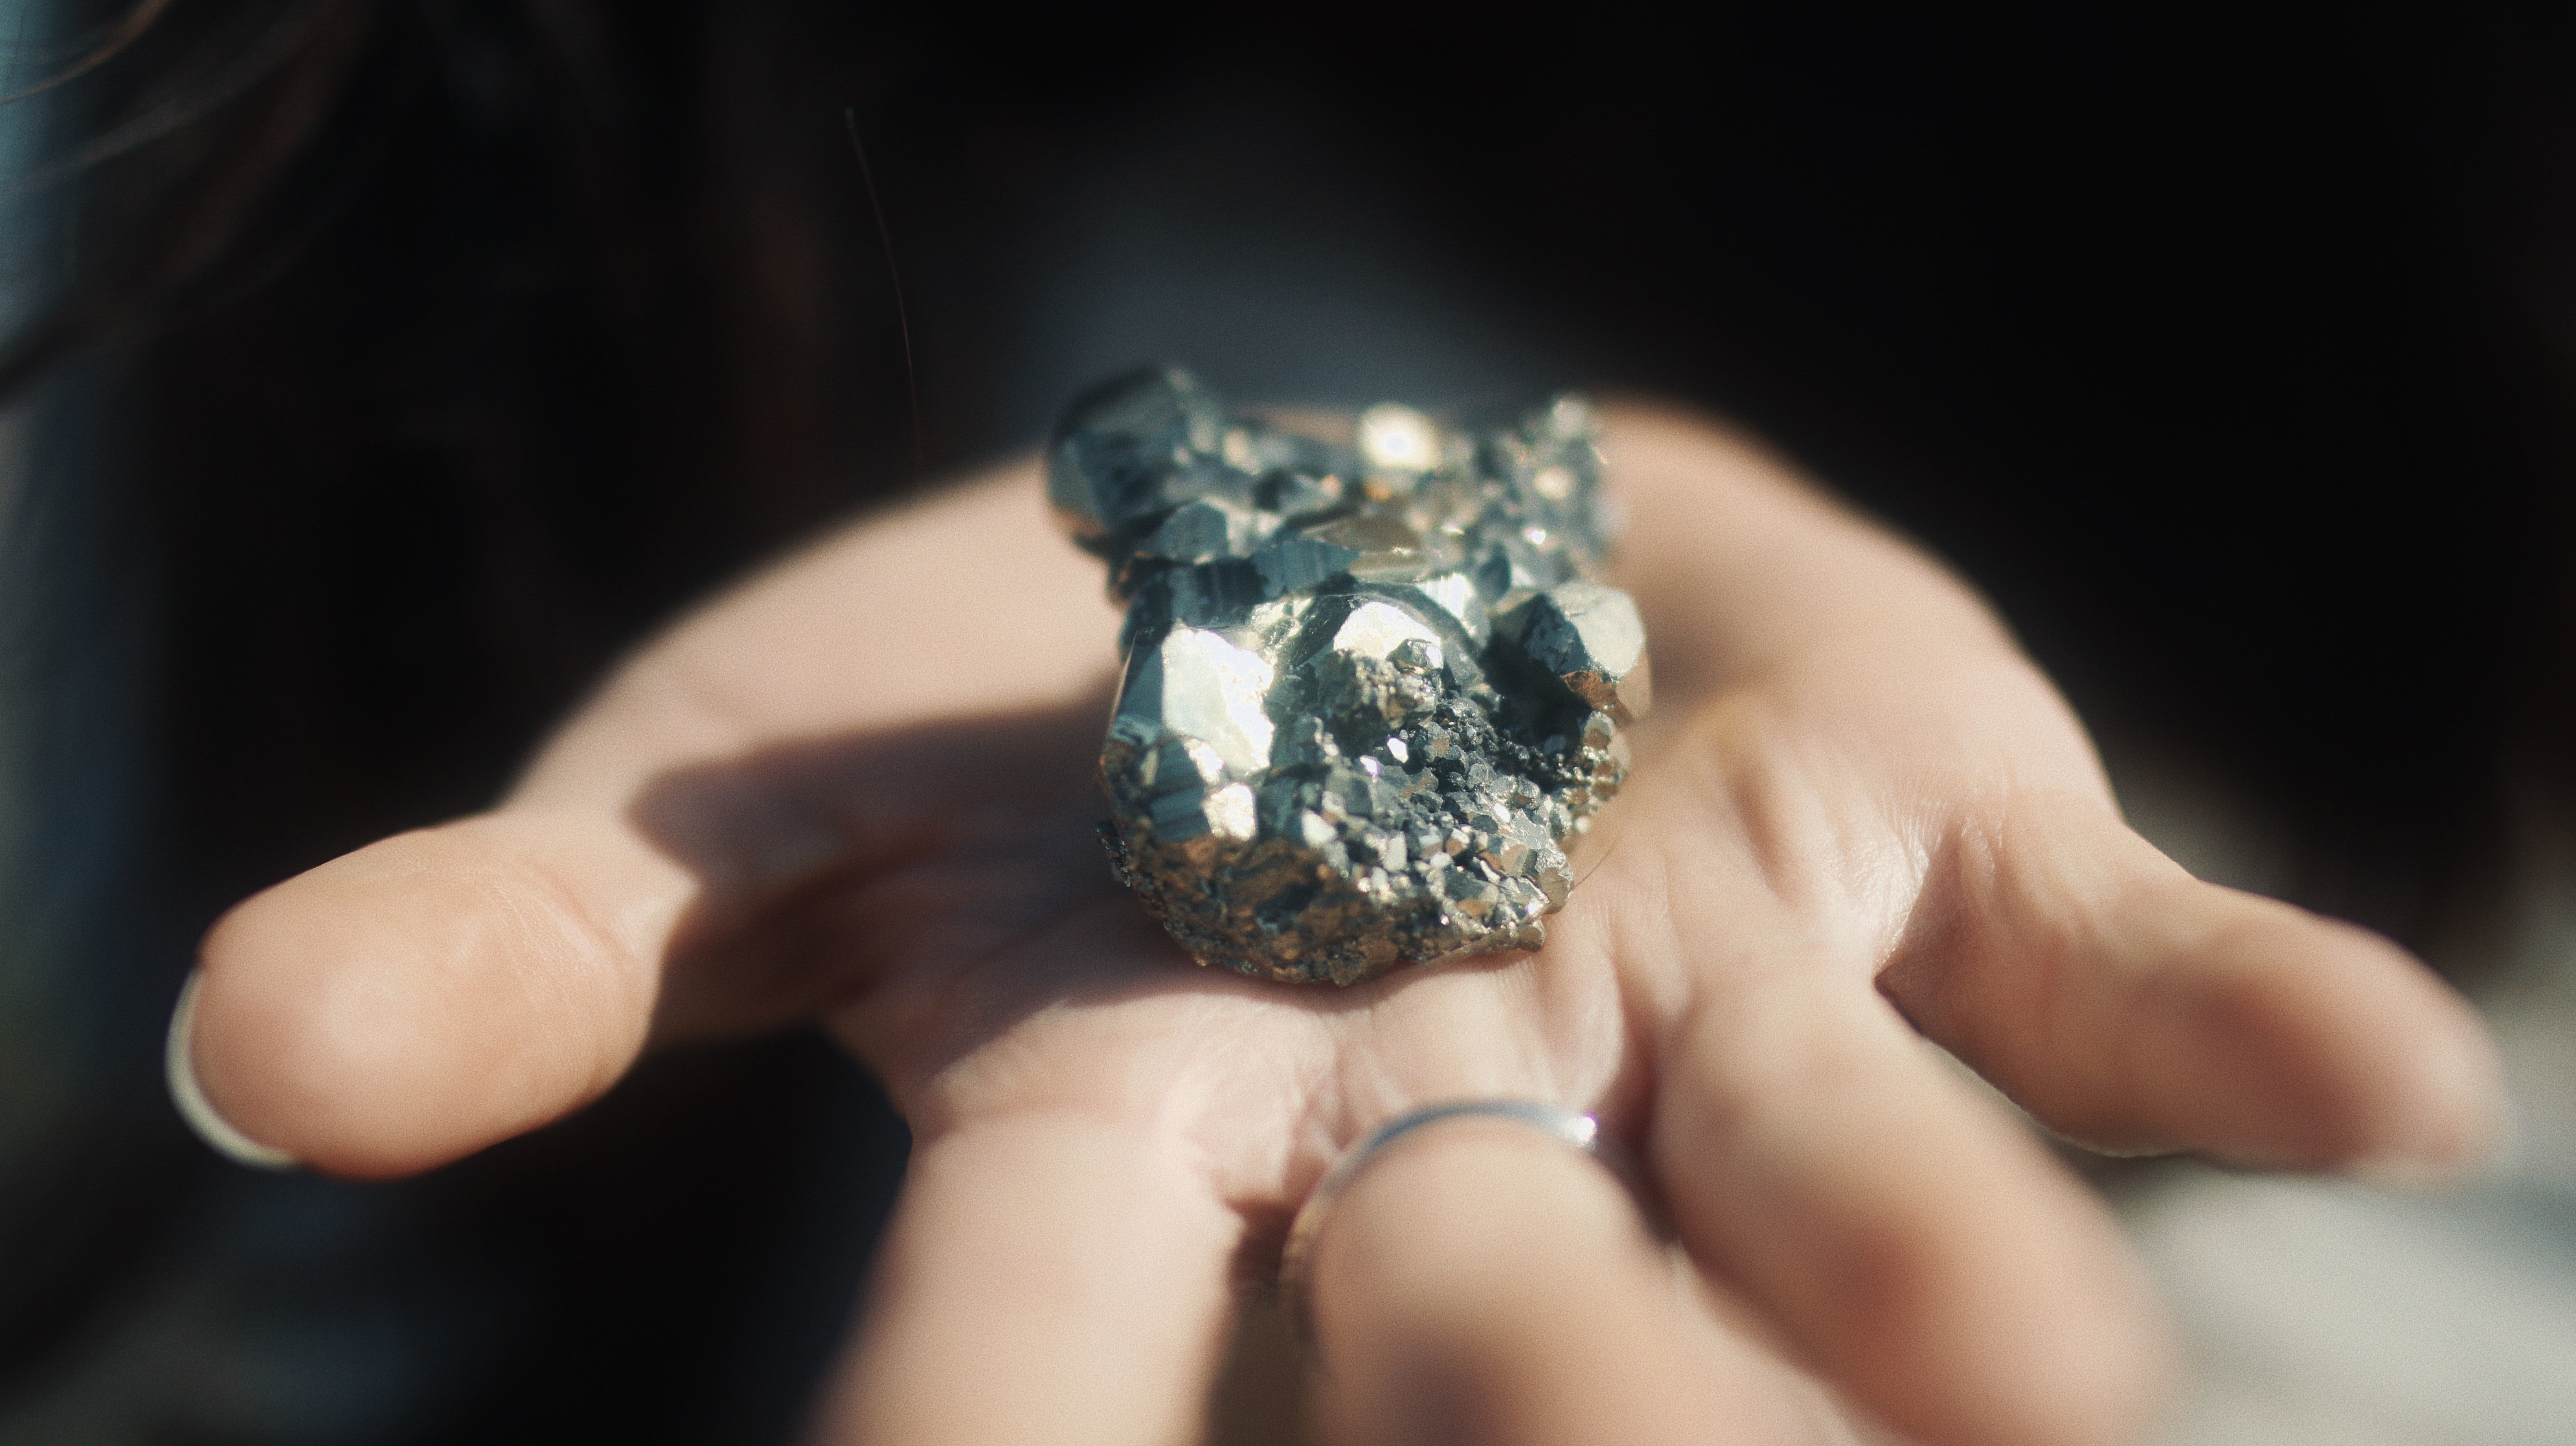 An open hand holds a precious gem that is still in its natural form | Photo: Unsplash/Elia Pellegrini